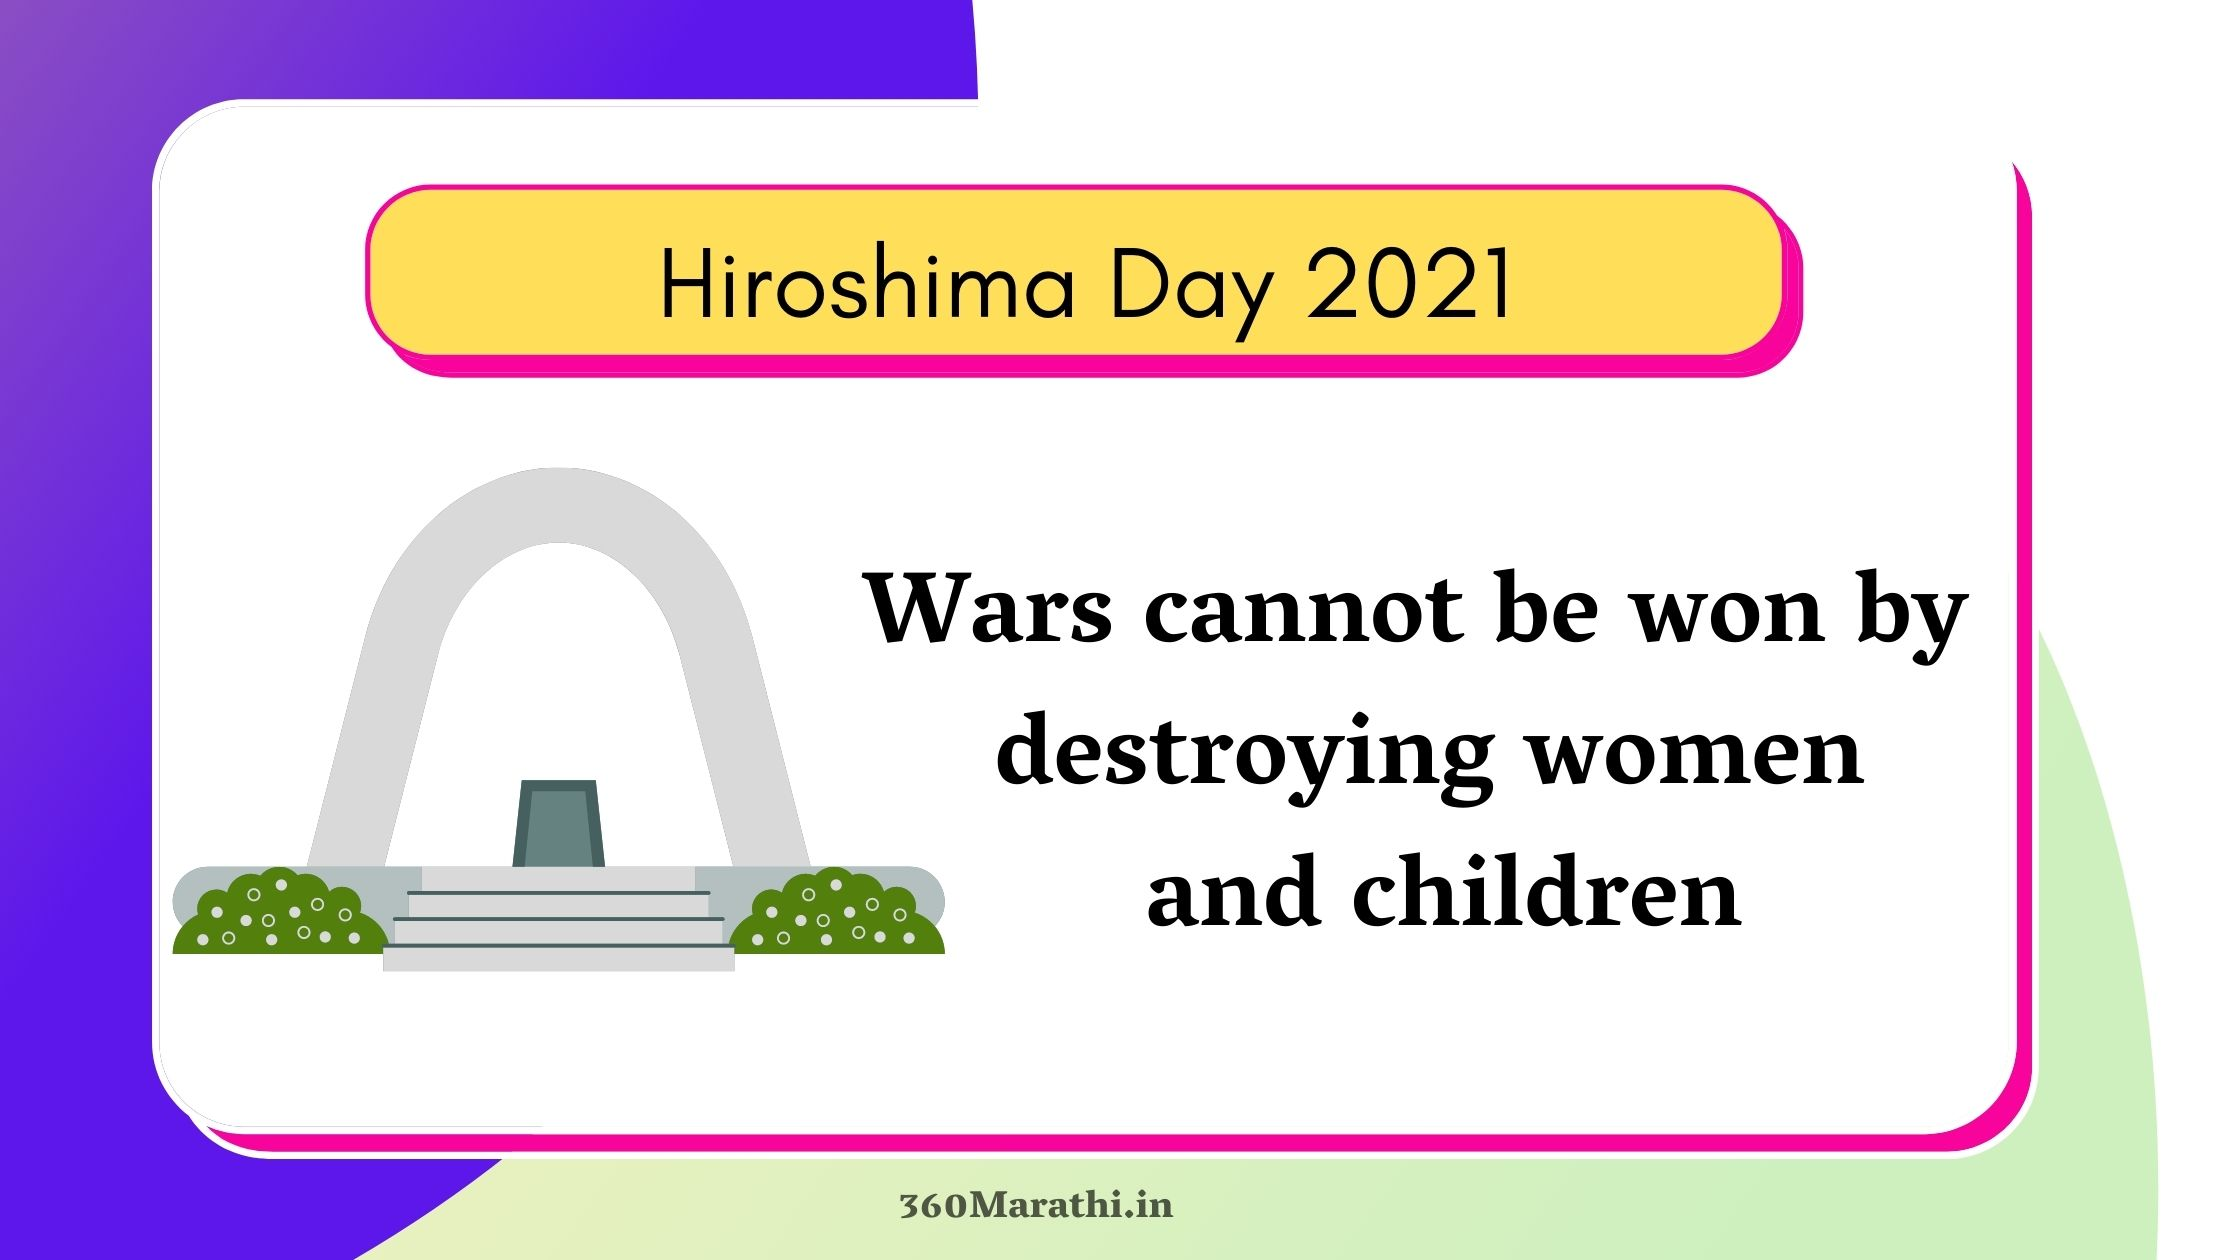 ( 2021 ) Hiroshima Day Quotes, Slogans, Posters, Images